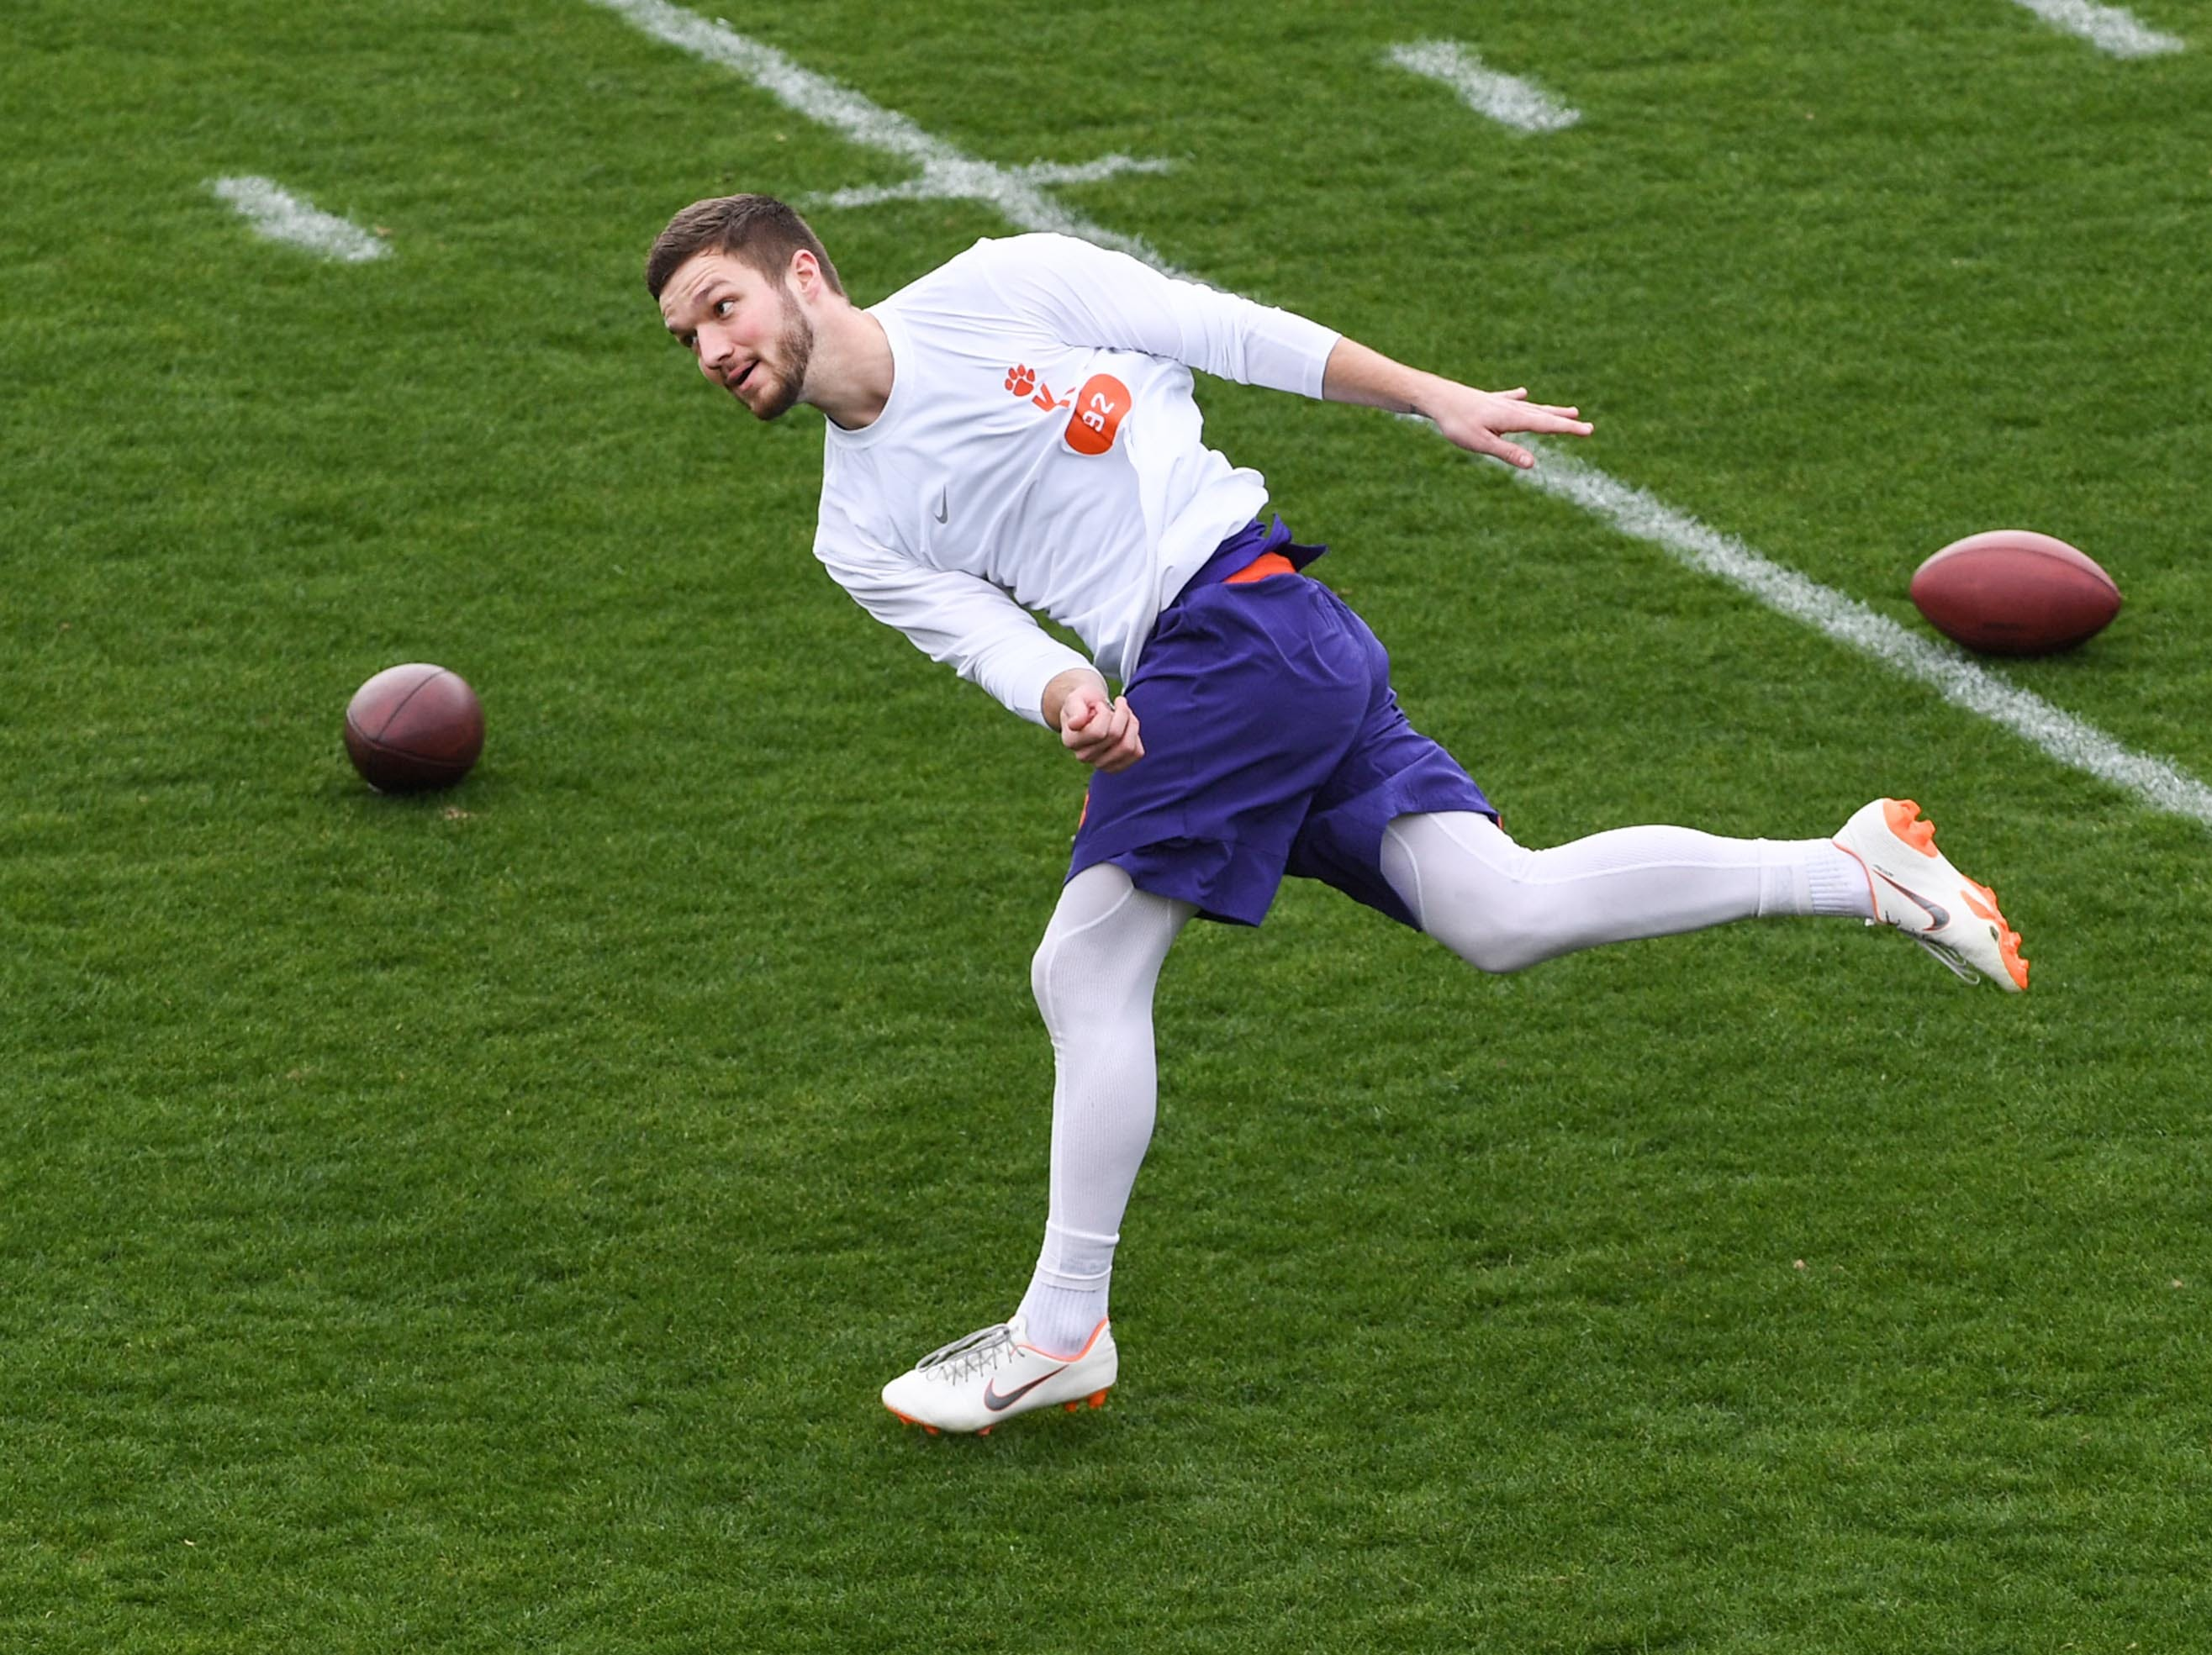 Kicker Greg Huegel kicks for scouts during Clemson pro day at the Poe Indoor Facility in Clemson Thursday, March 14, 2019.